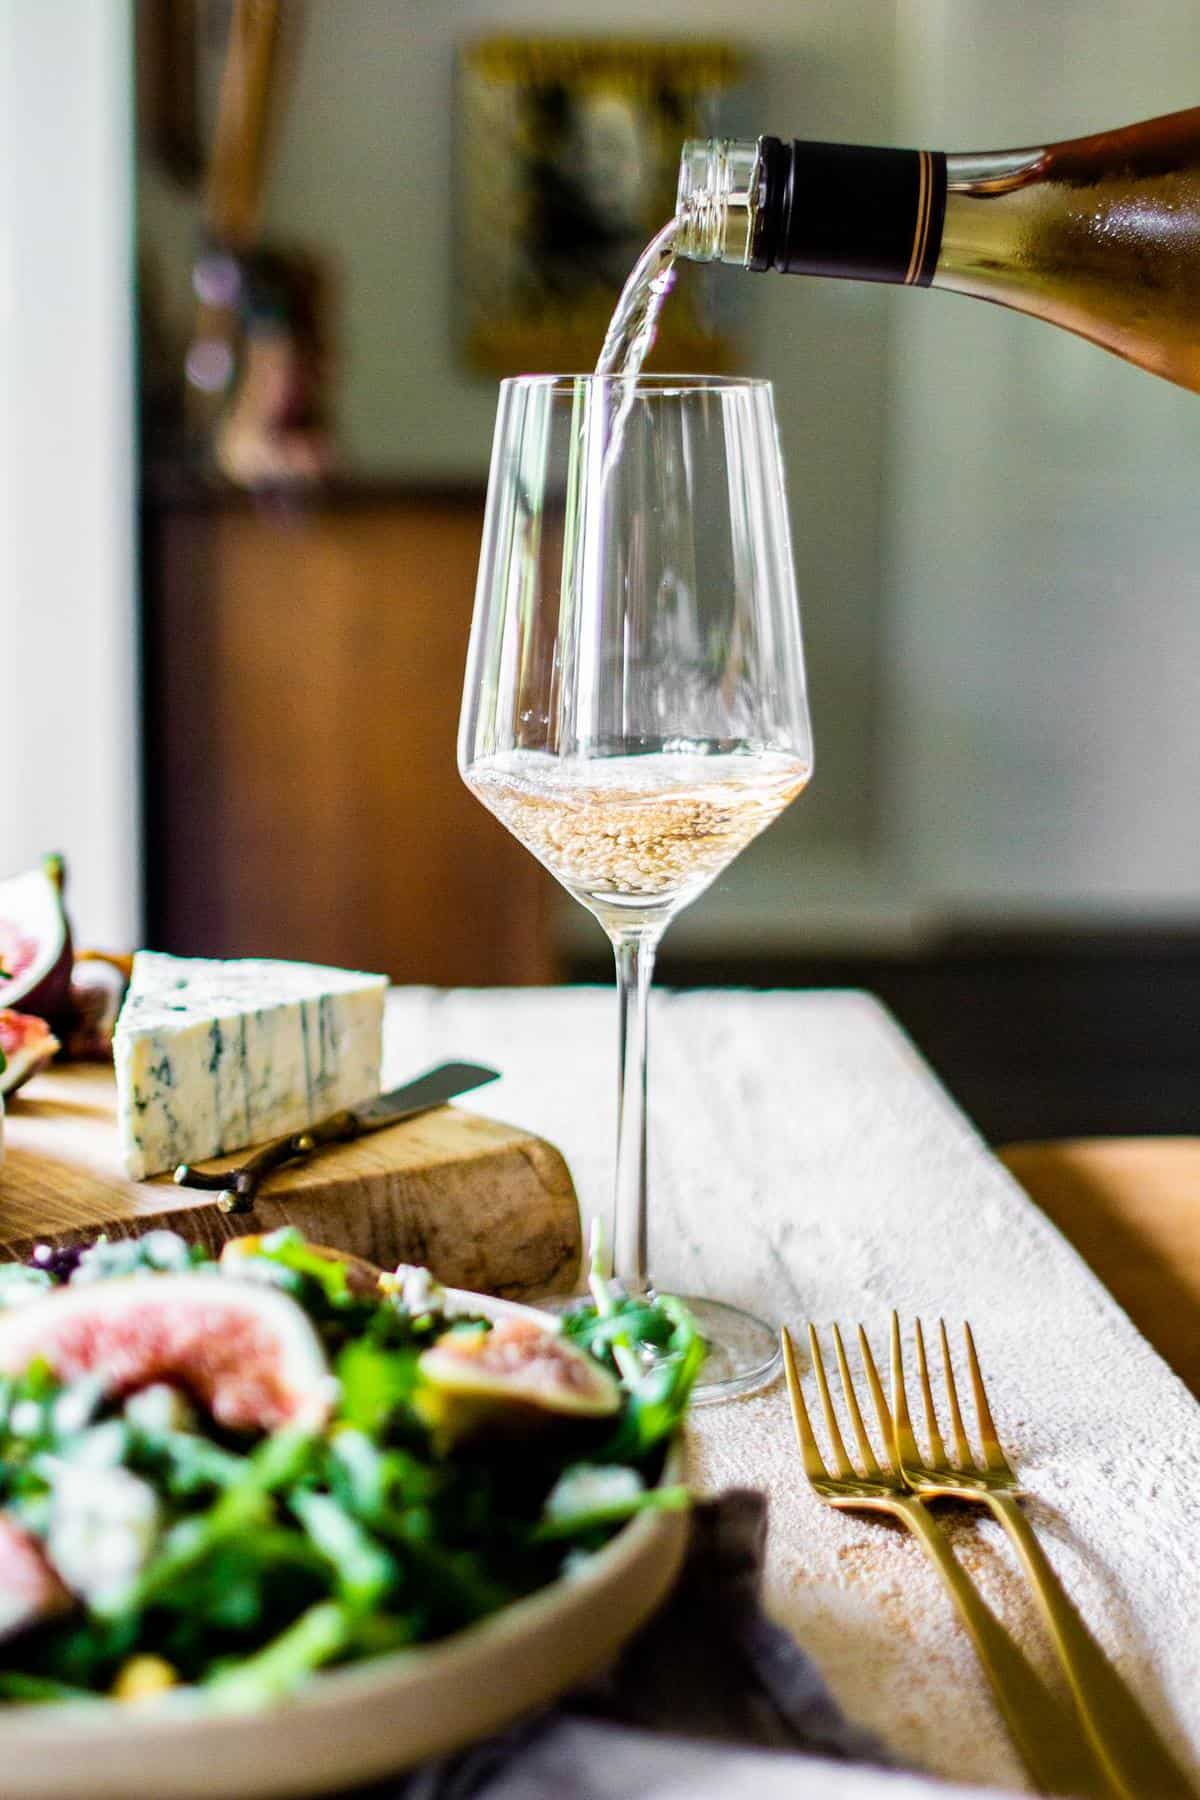 The Best Wine and Food Recipes From California Grown